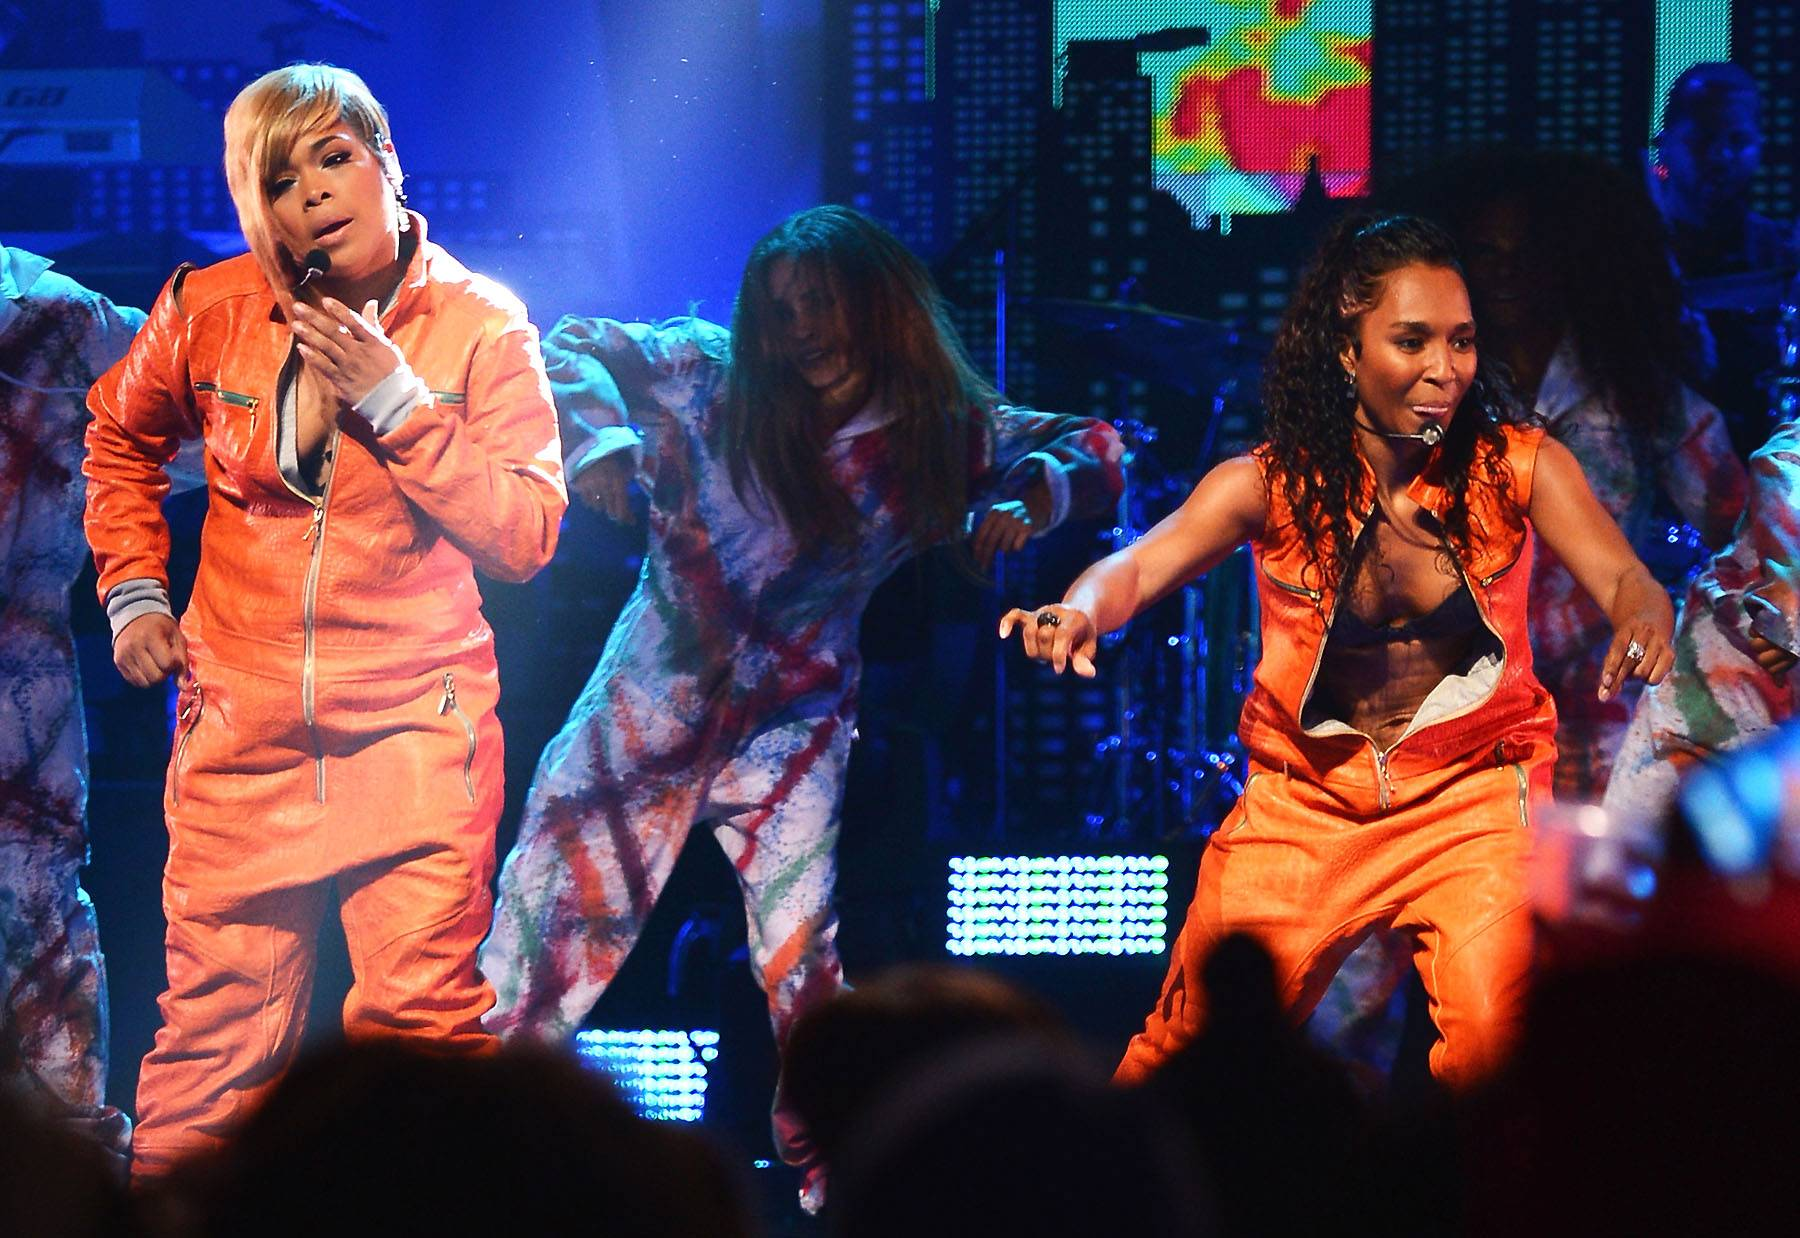 TLC's Fundraising Success - TLC's fundraising efforts for their new album are going well. They've raised $50,000 in one day and the total is still climbing.  (Photo: Michael Loccisano/Getty Images)